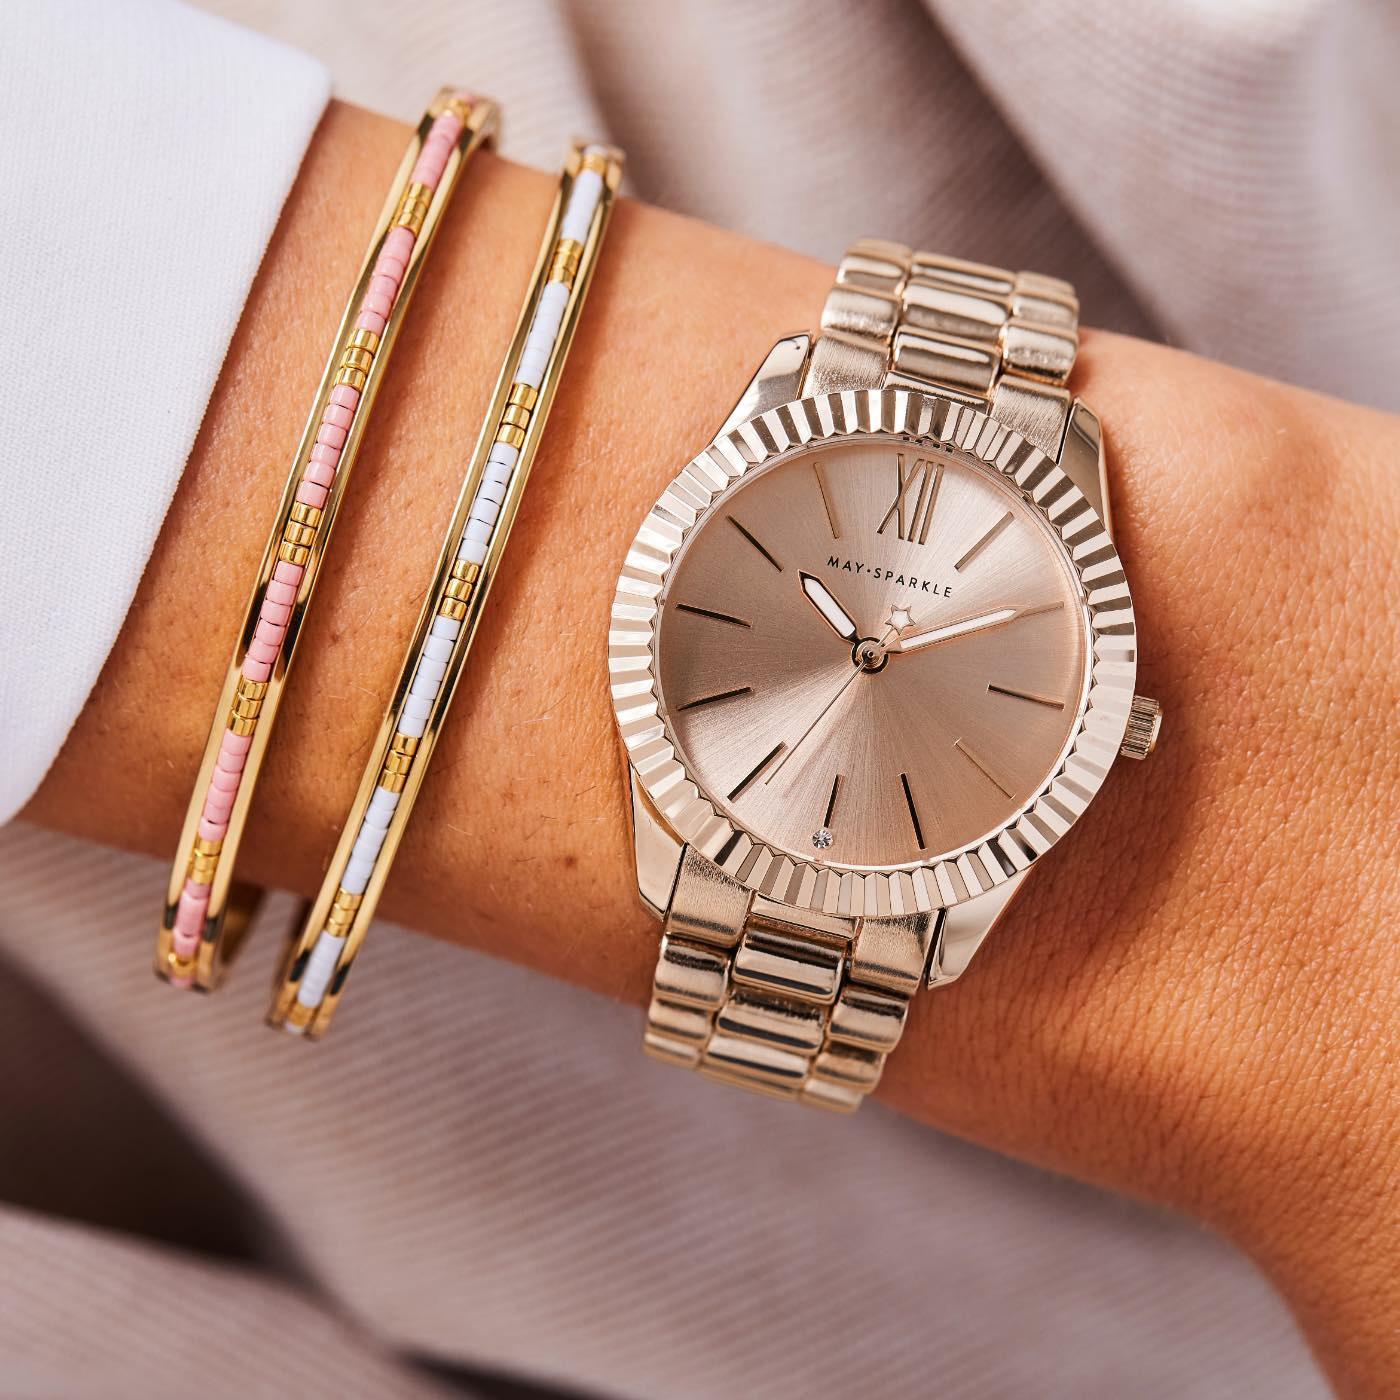 May Sparkle Luxurious Life ladies watch rose gold colored